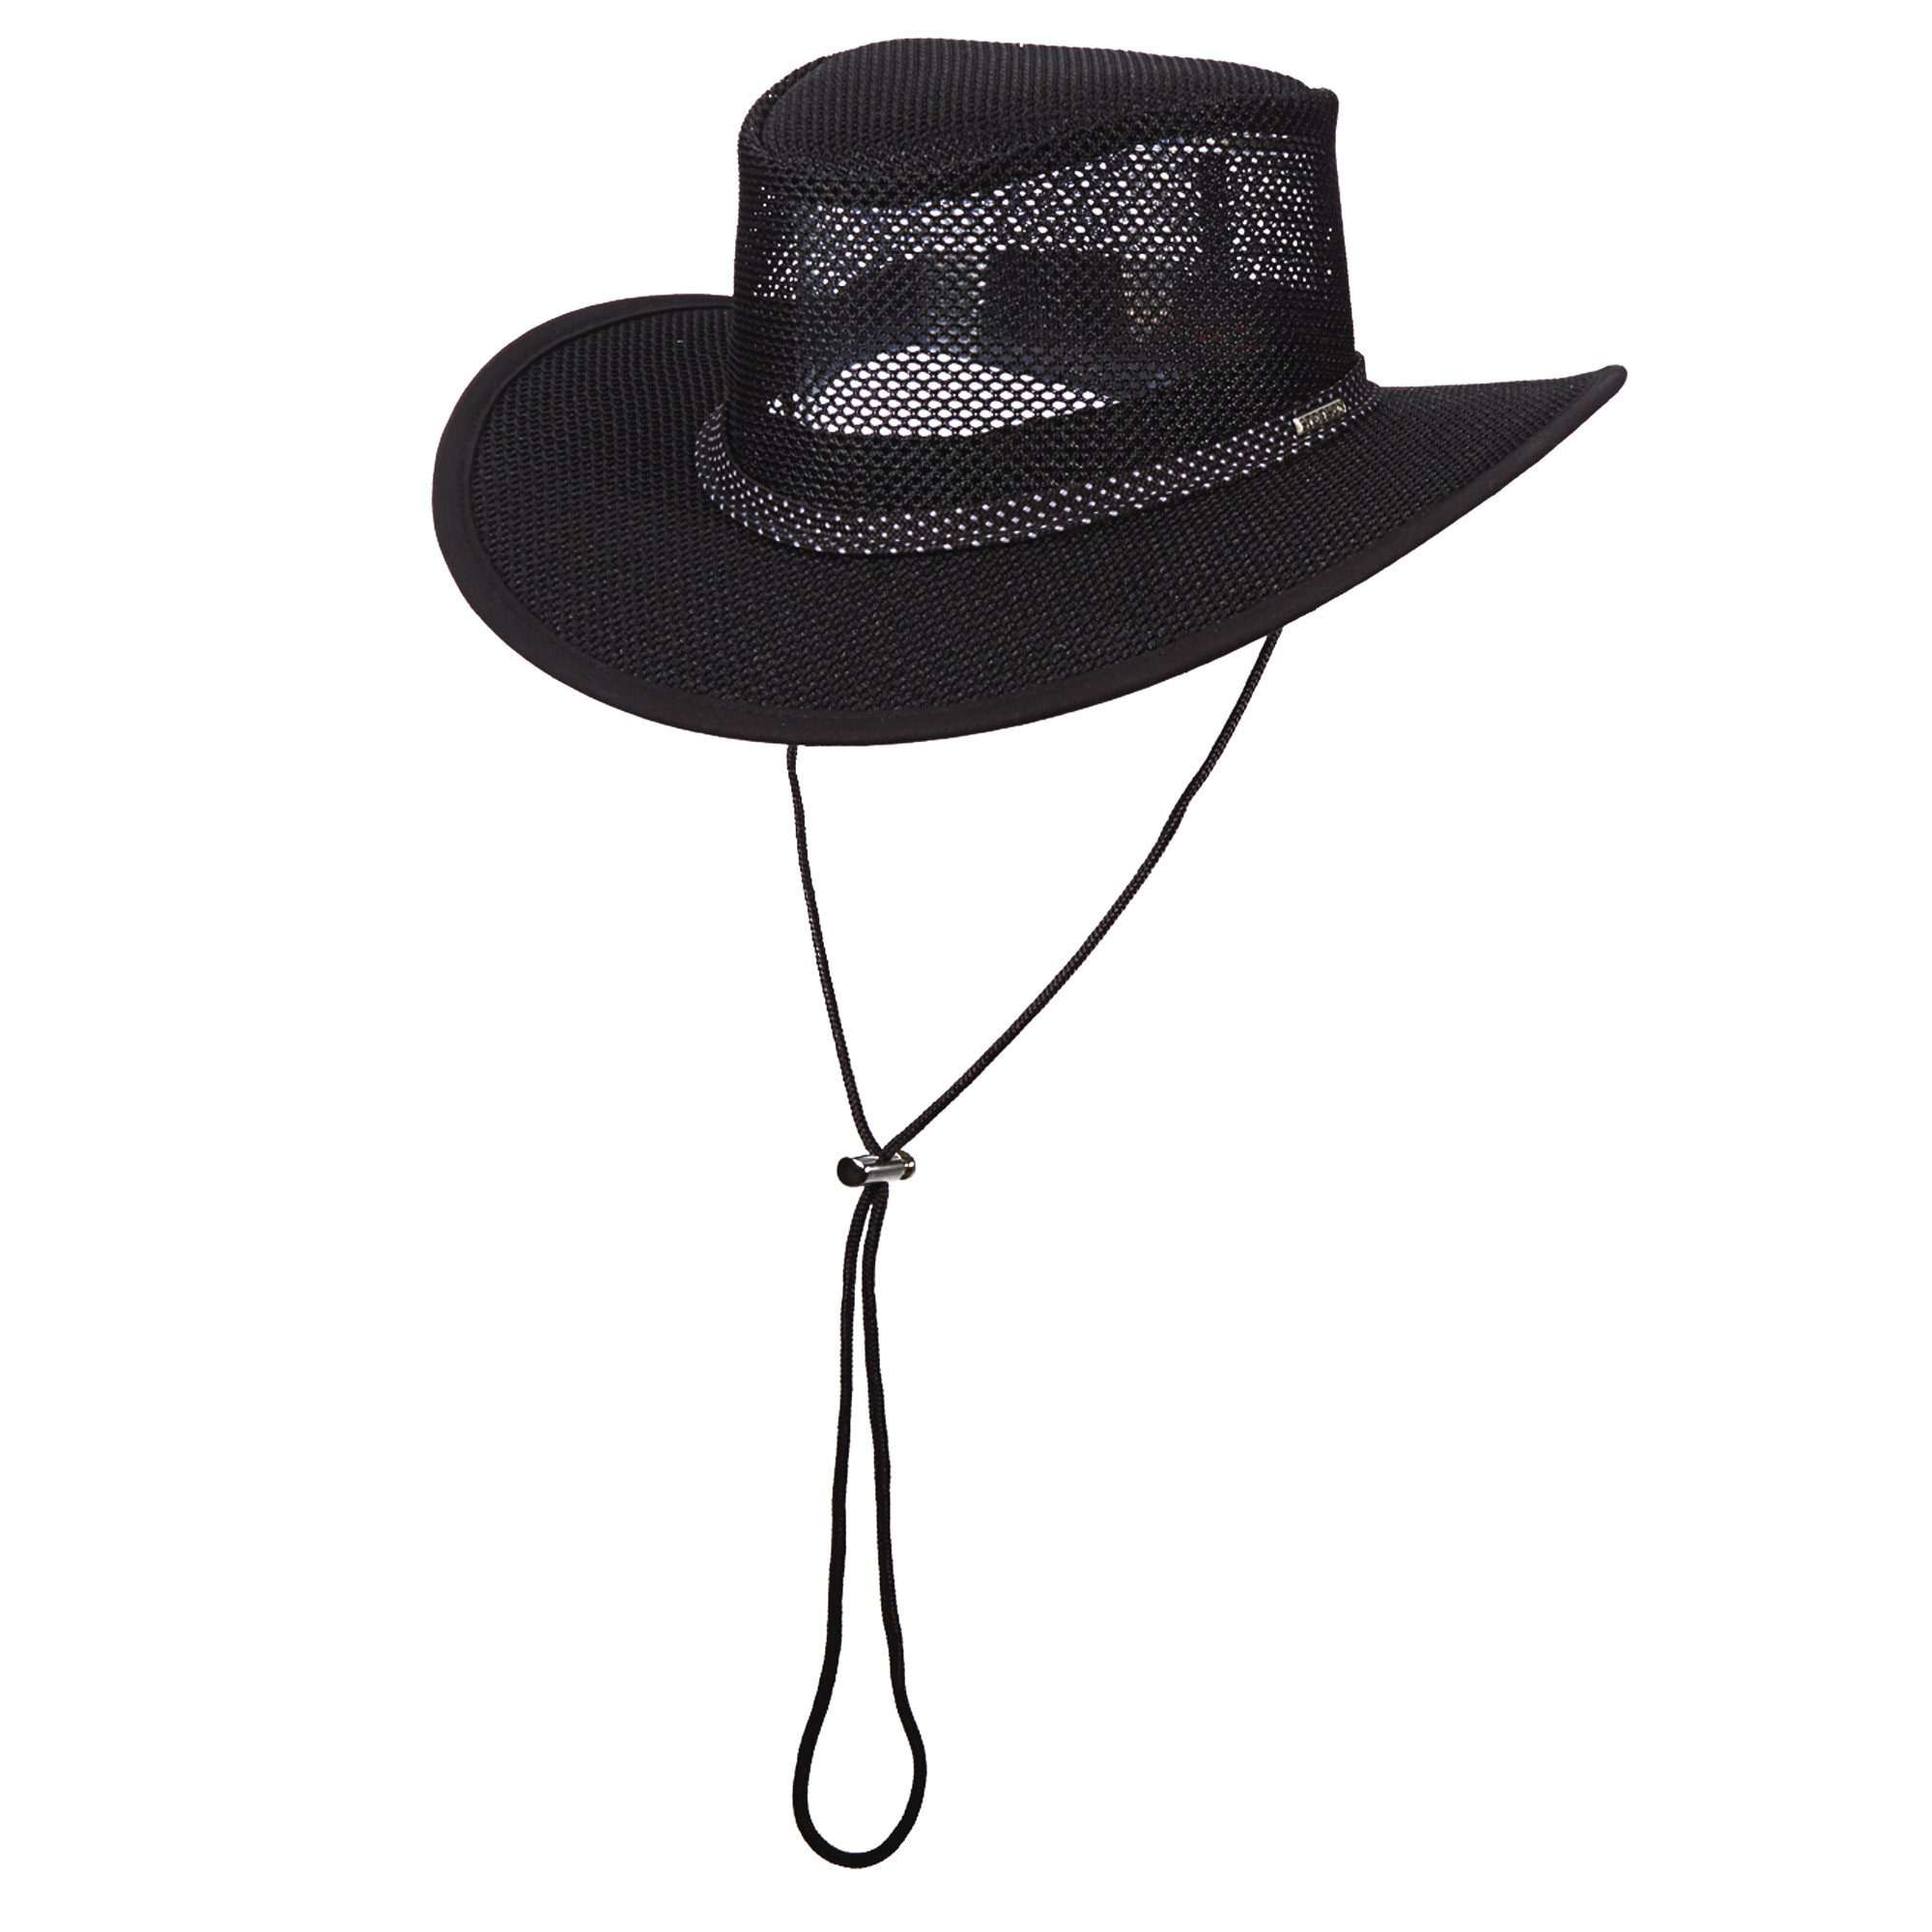 Stetson Mesh Outback Hat for Men - Black 2XL - SetarTrading Hats b5df2134dd